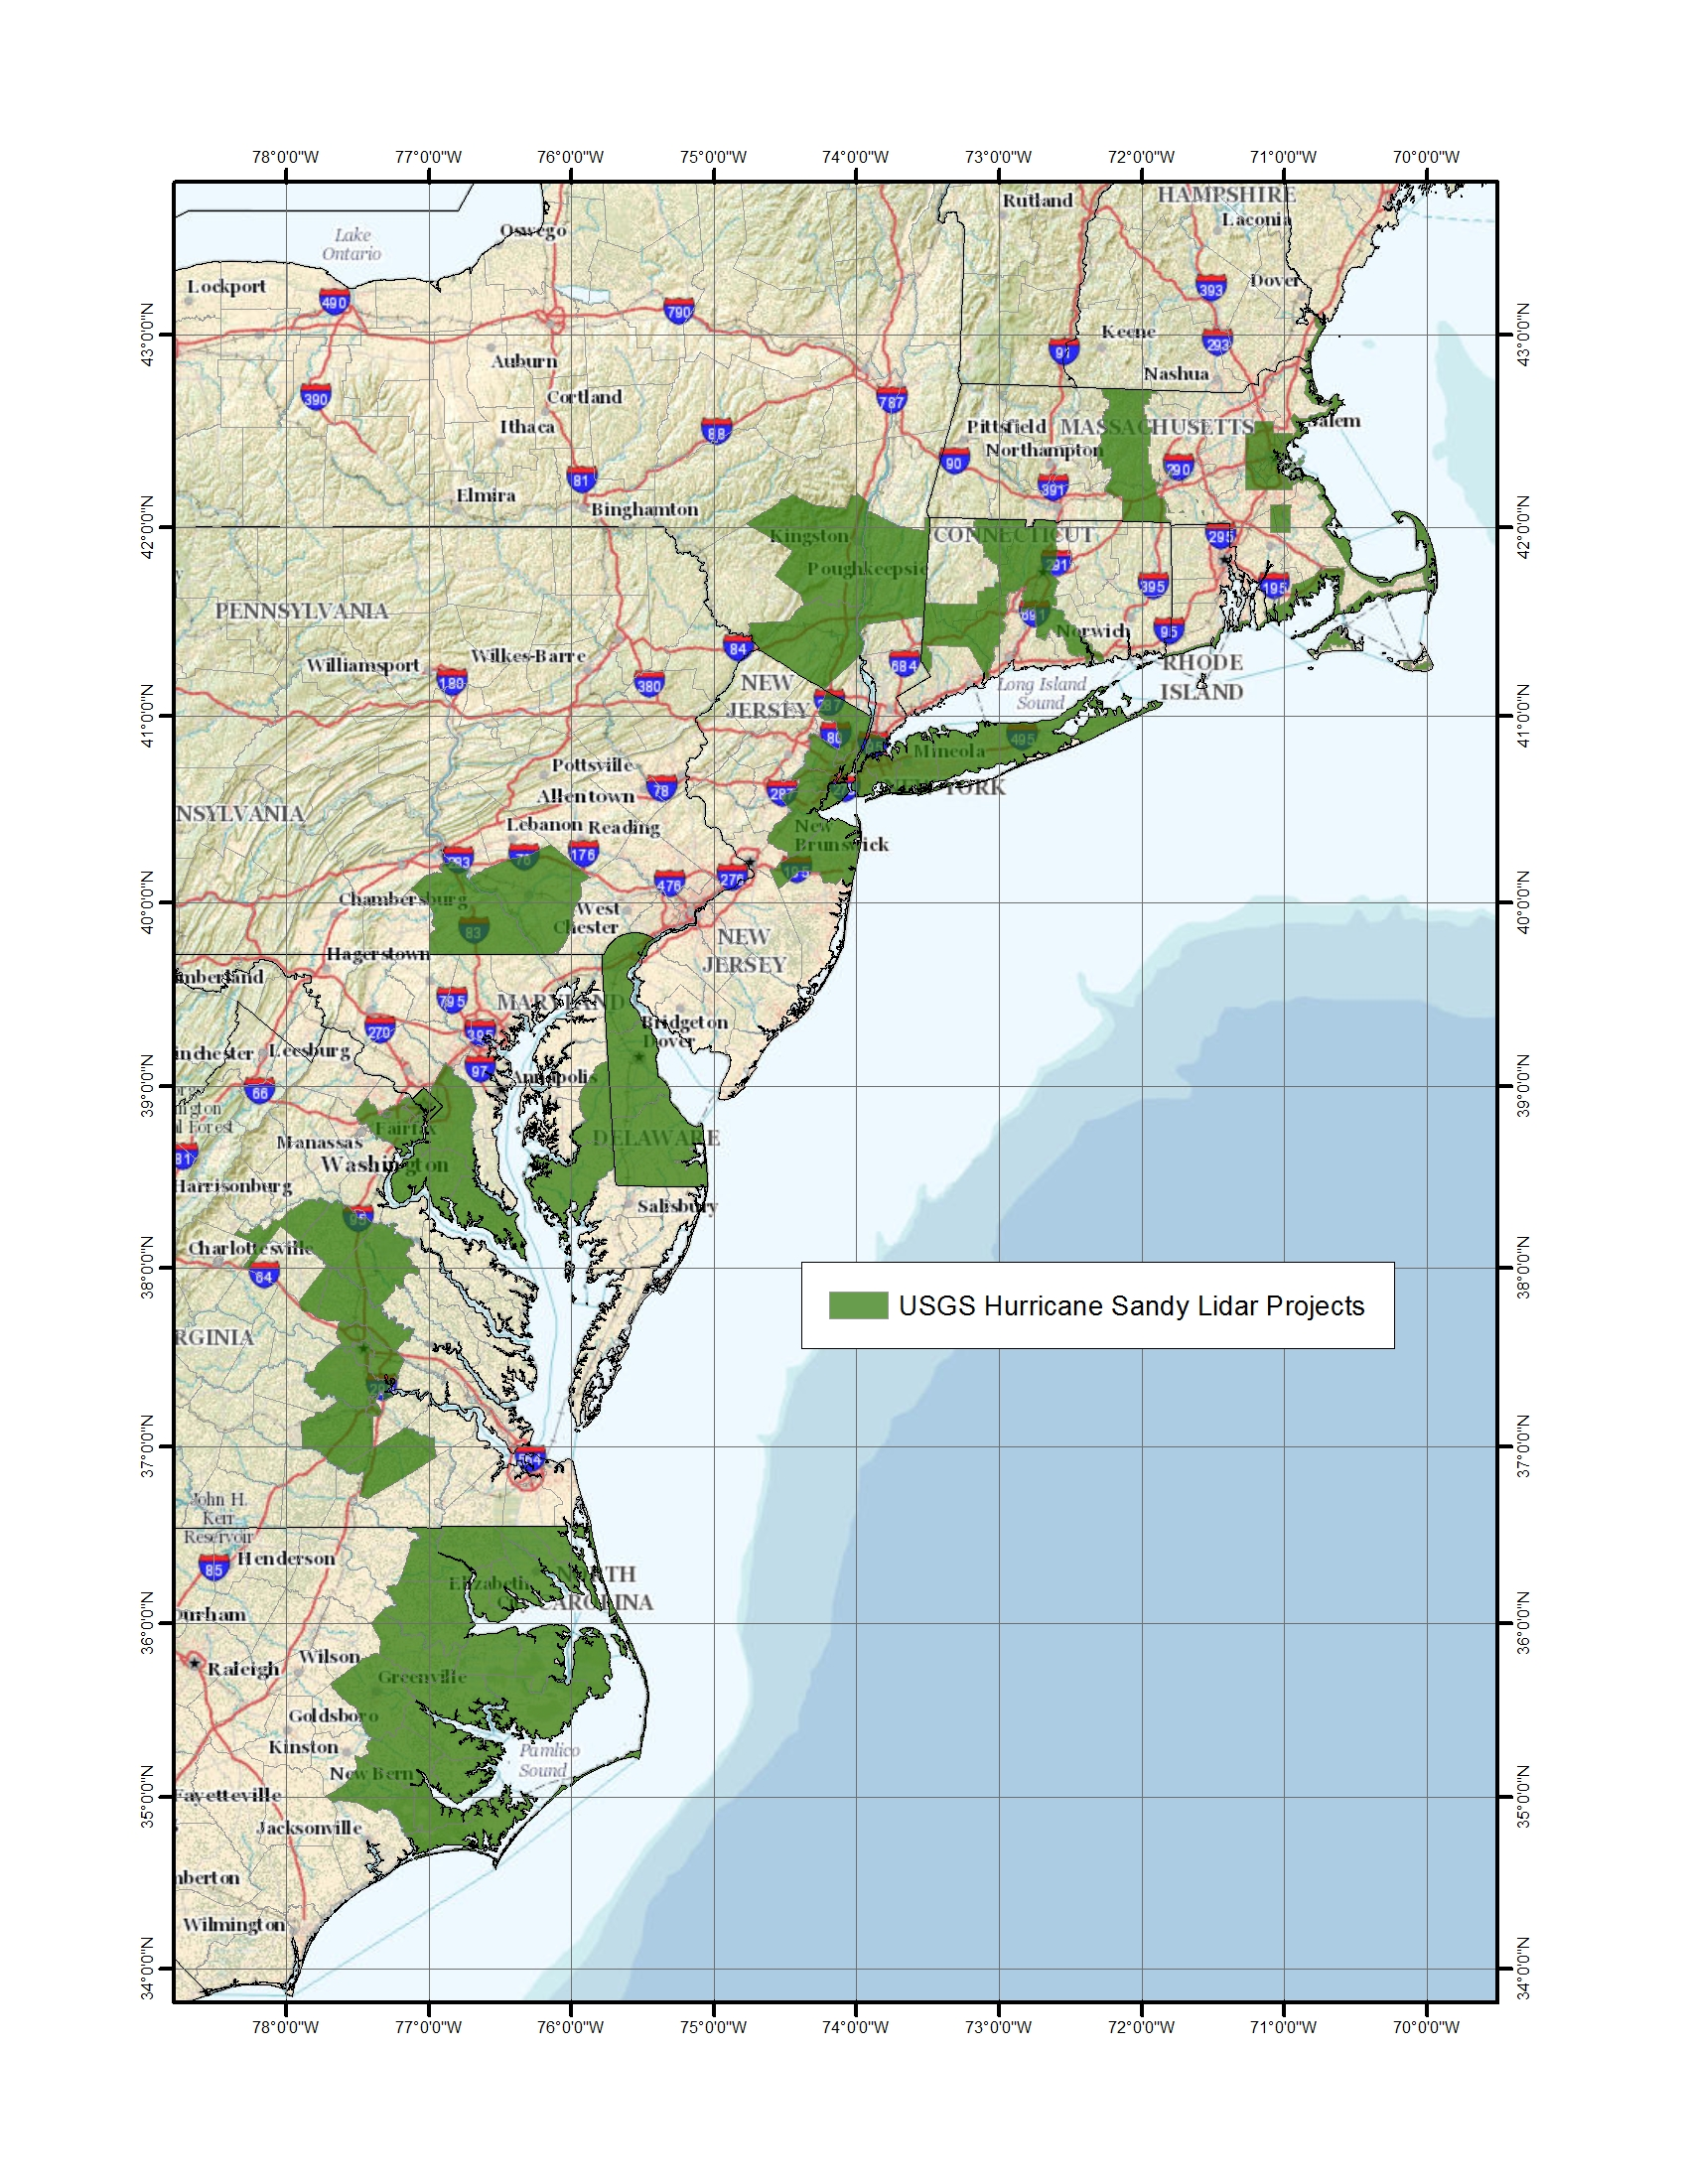 Green areas show the locations of Hurricane Sandy lidar projects.